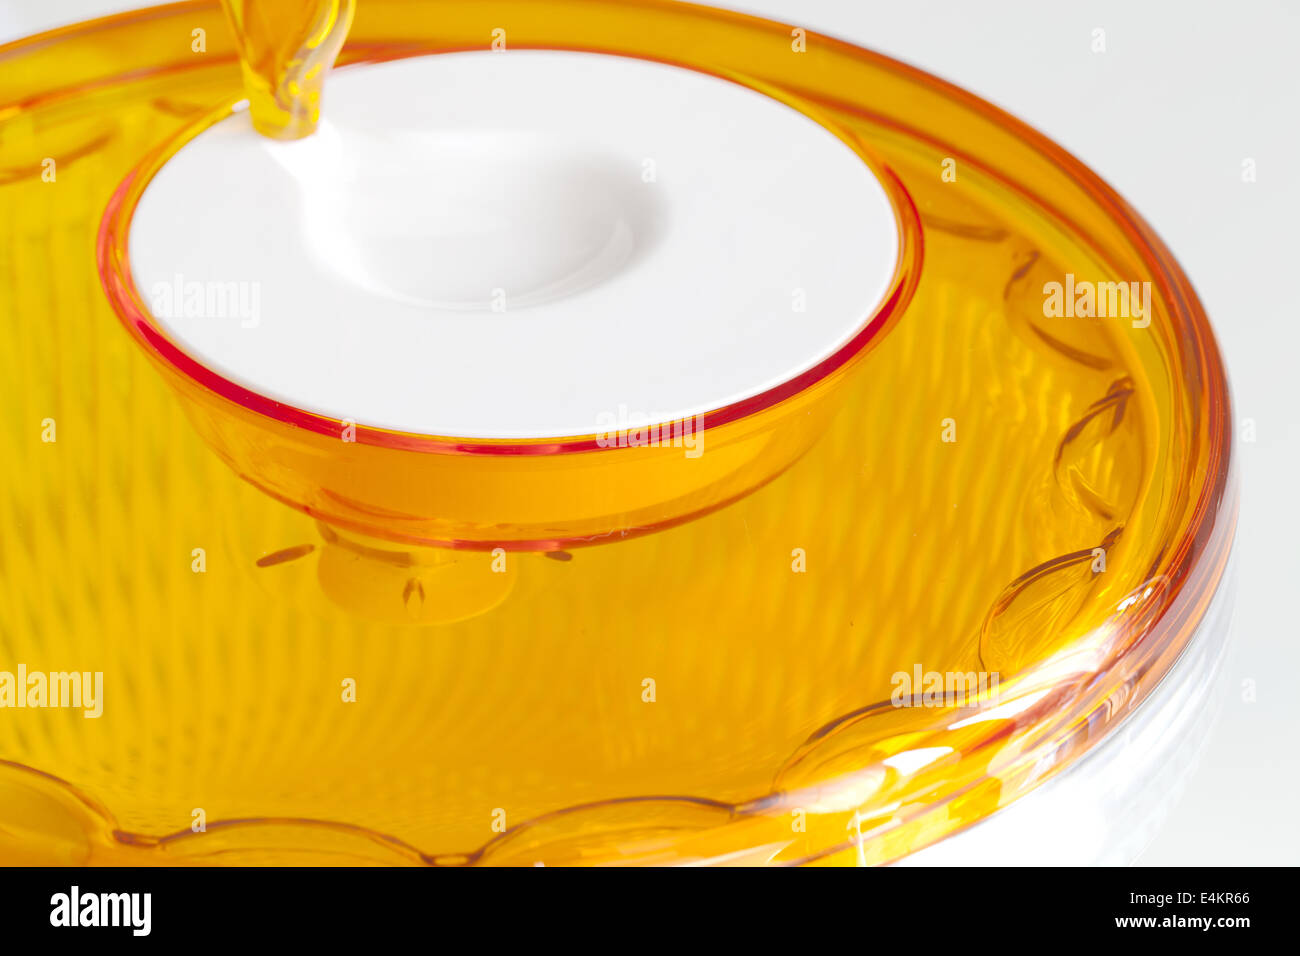 Salad spinner - Stock Image